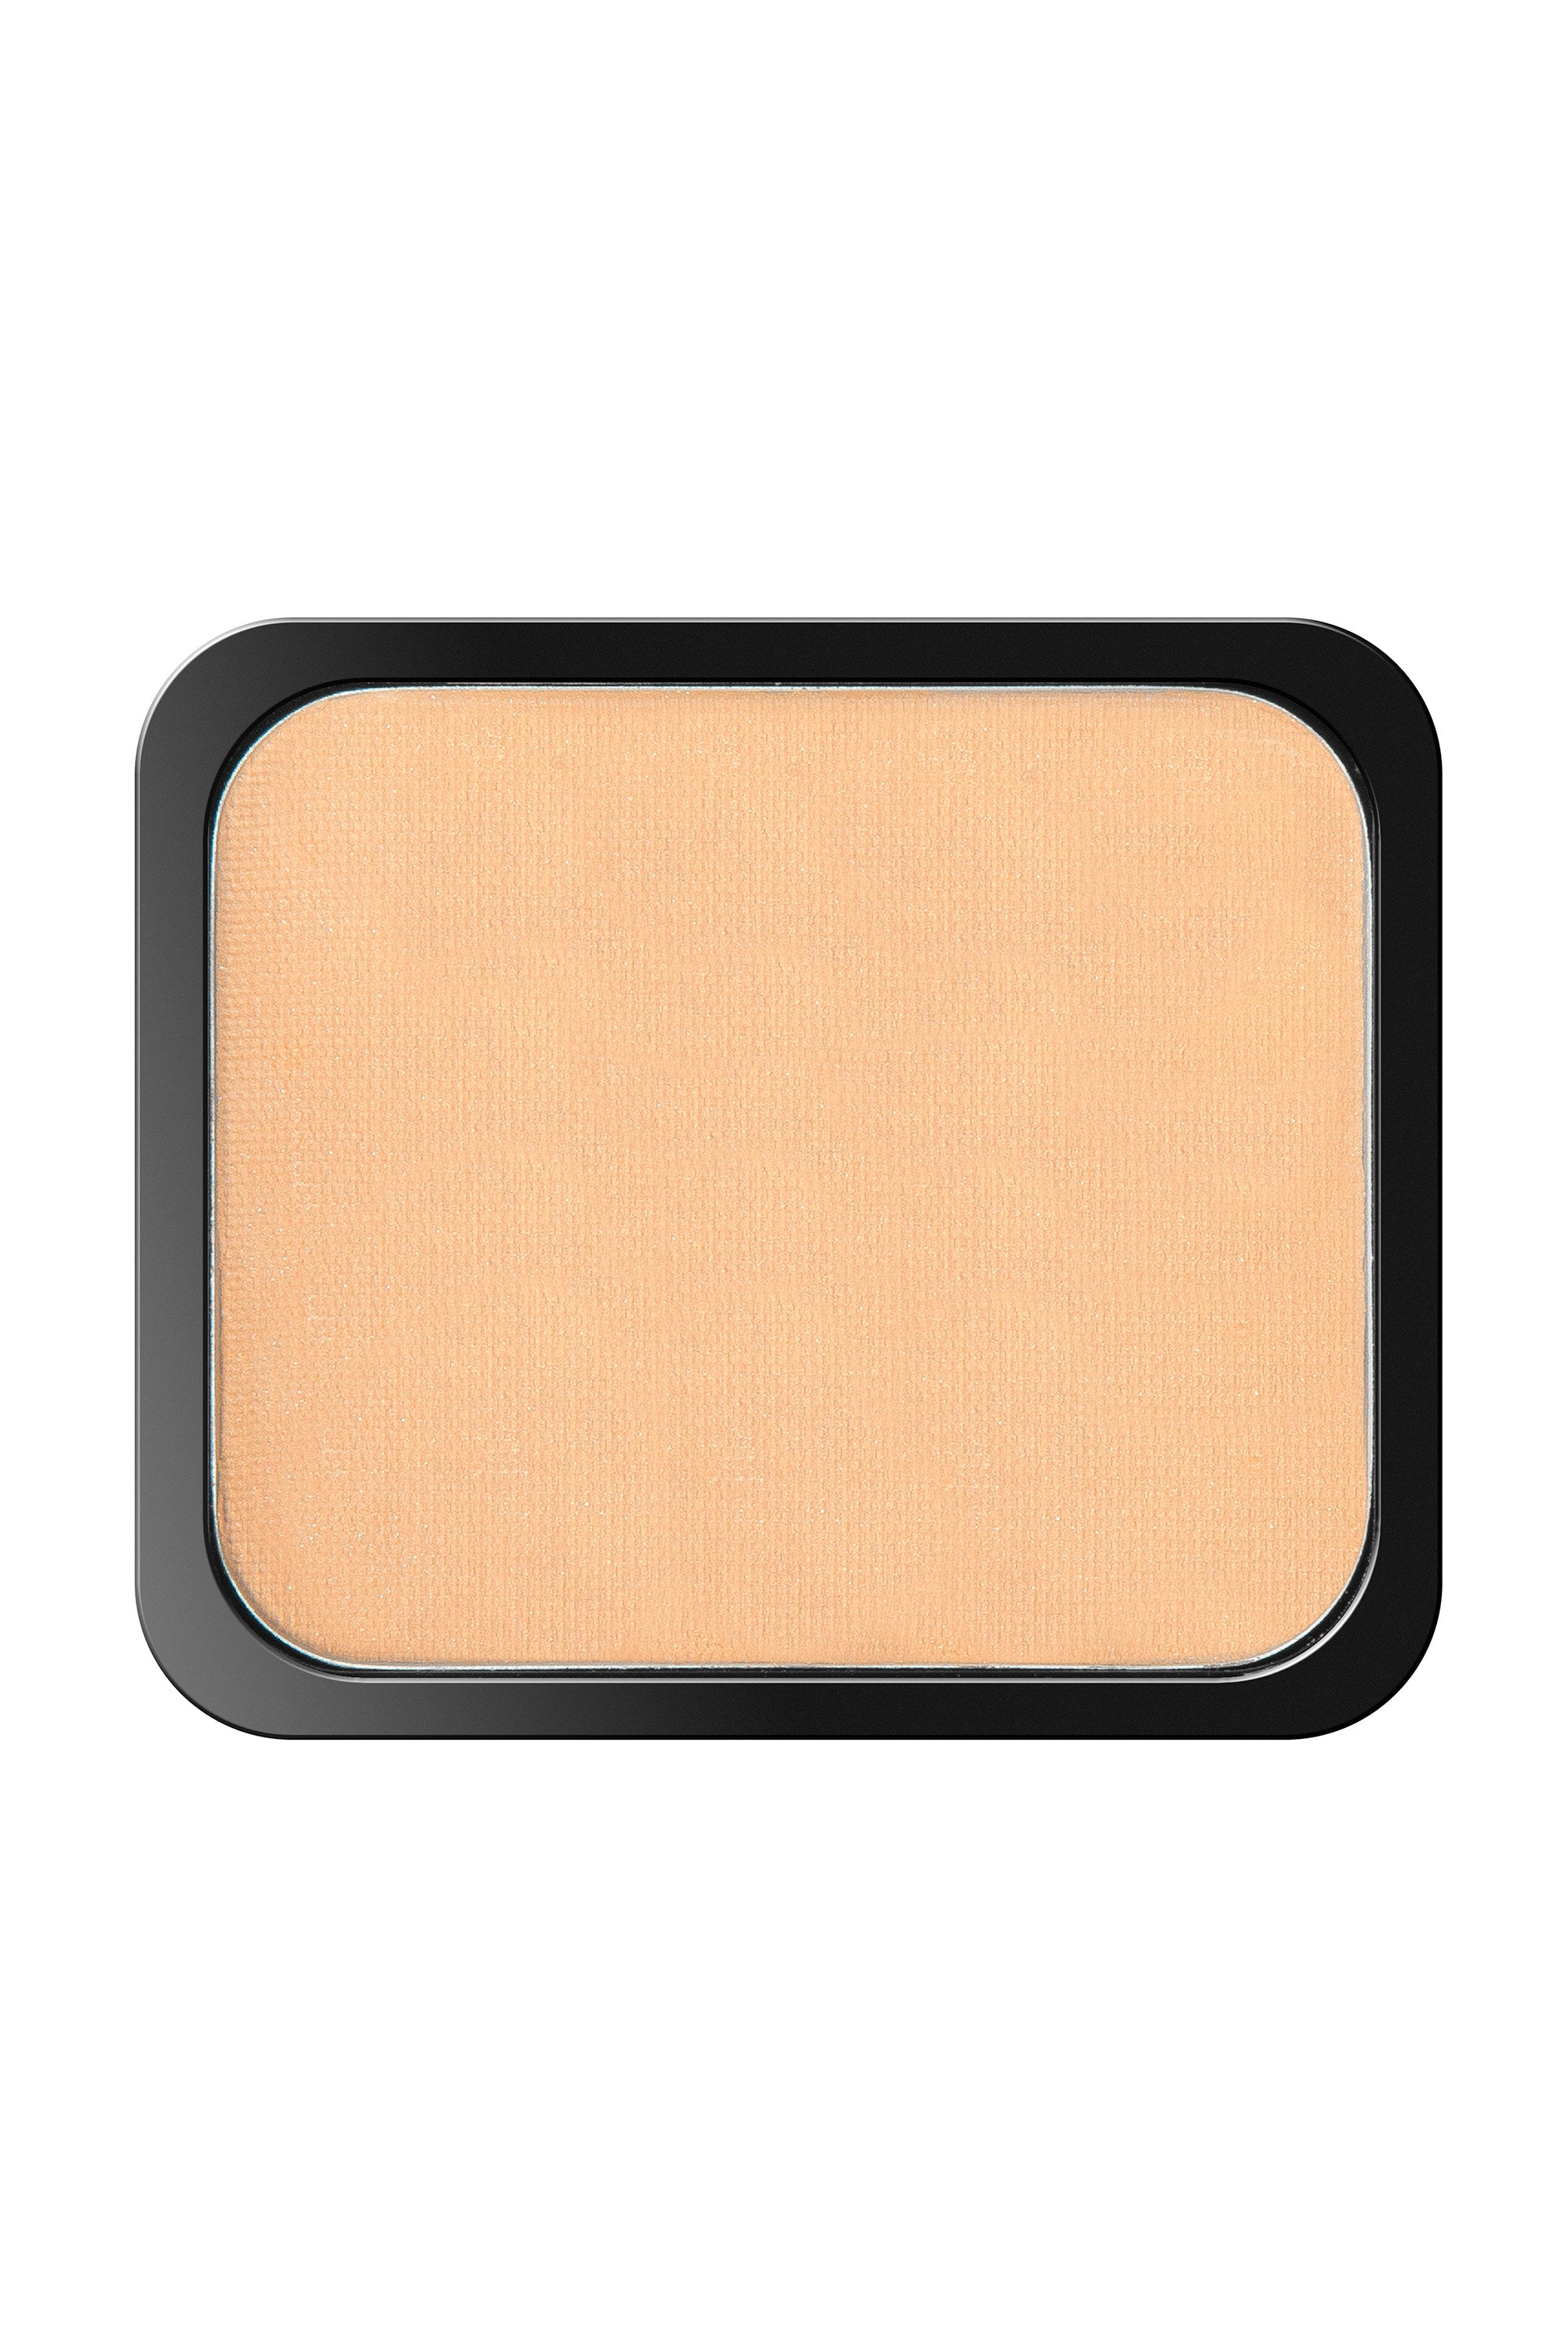 Two-Way Foundation - Light Beige